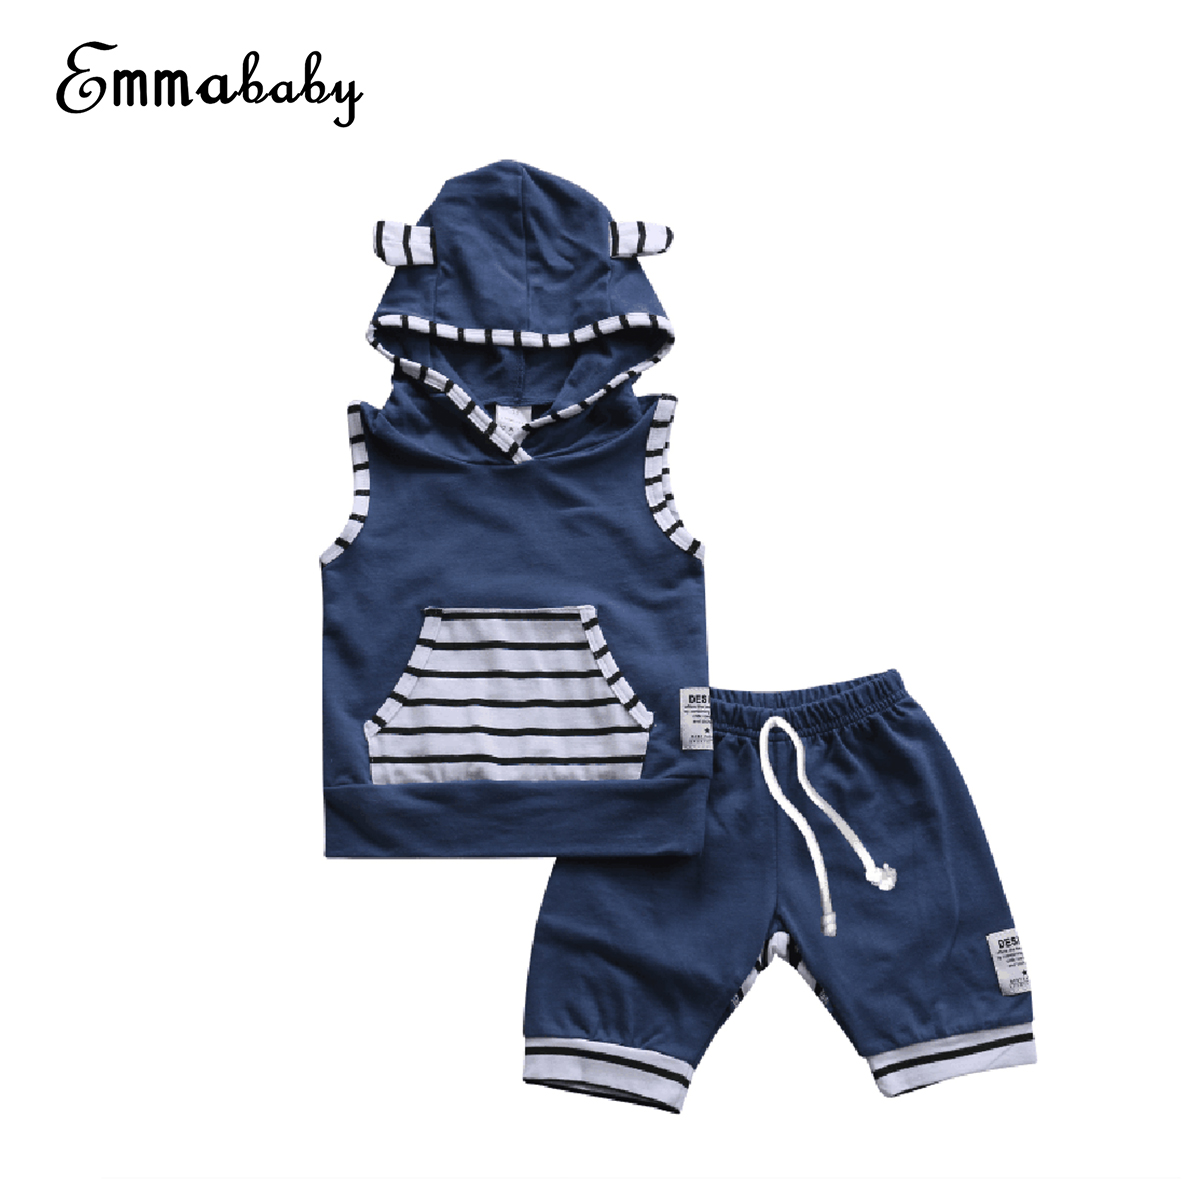 9cfc960c57 2018 New Summer Newborn Toddler Infant Baby Girls Cotton Clothes O-Neck Short  Sleeve T-shirt Tops Flare Pants 2Pcs Outfits Set